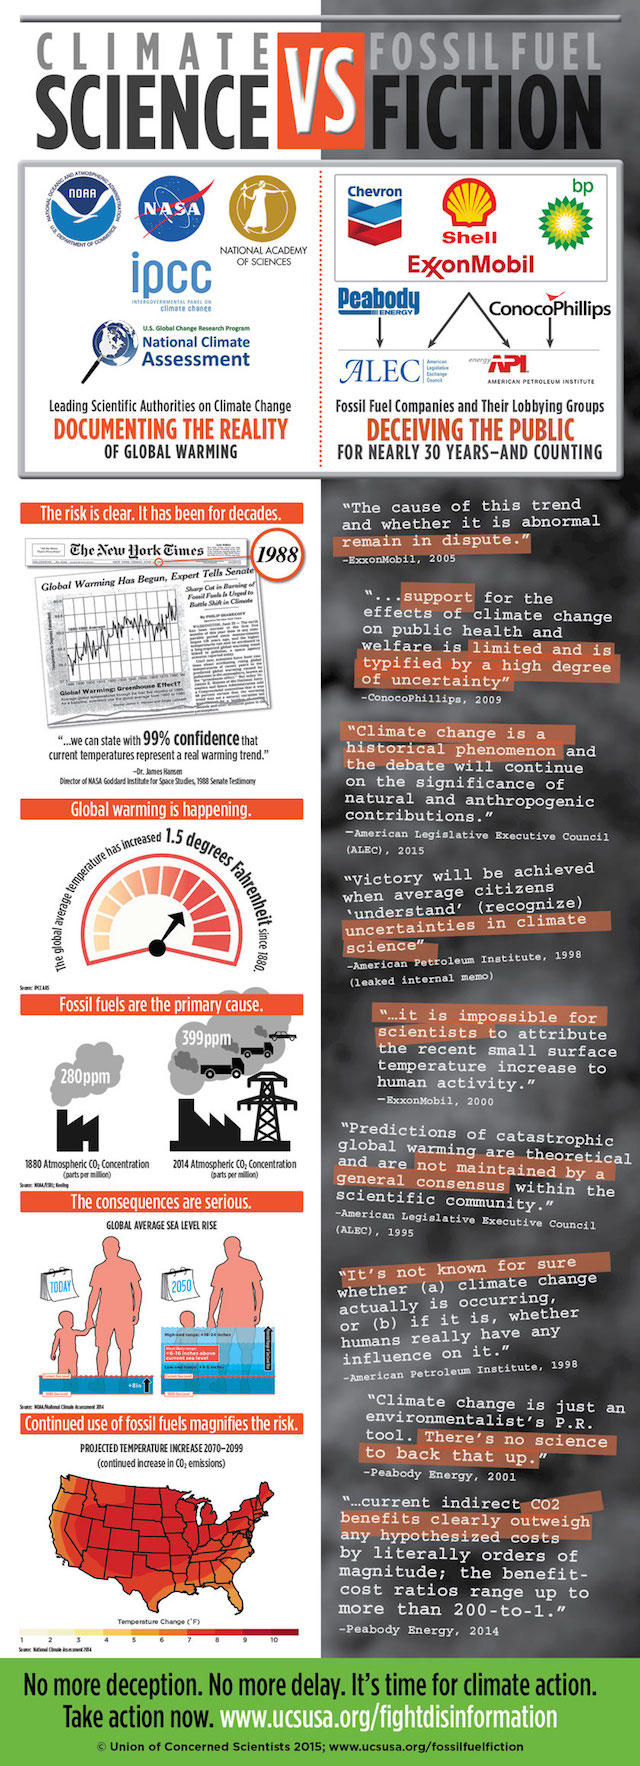 Infographic from the Union of Concerned Scientists shows climate science reality vs. fossil fuel fiction